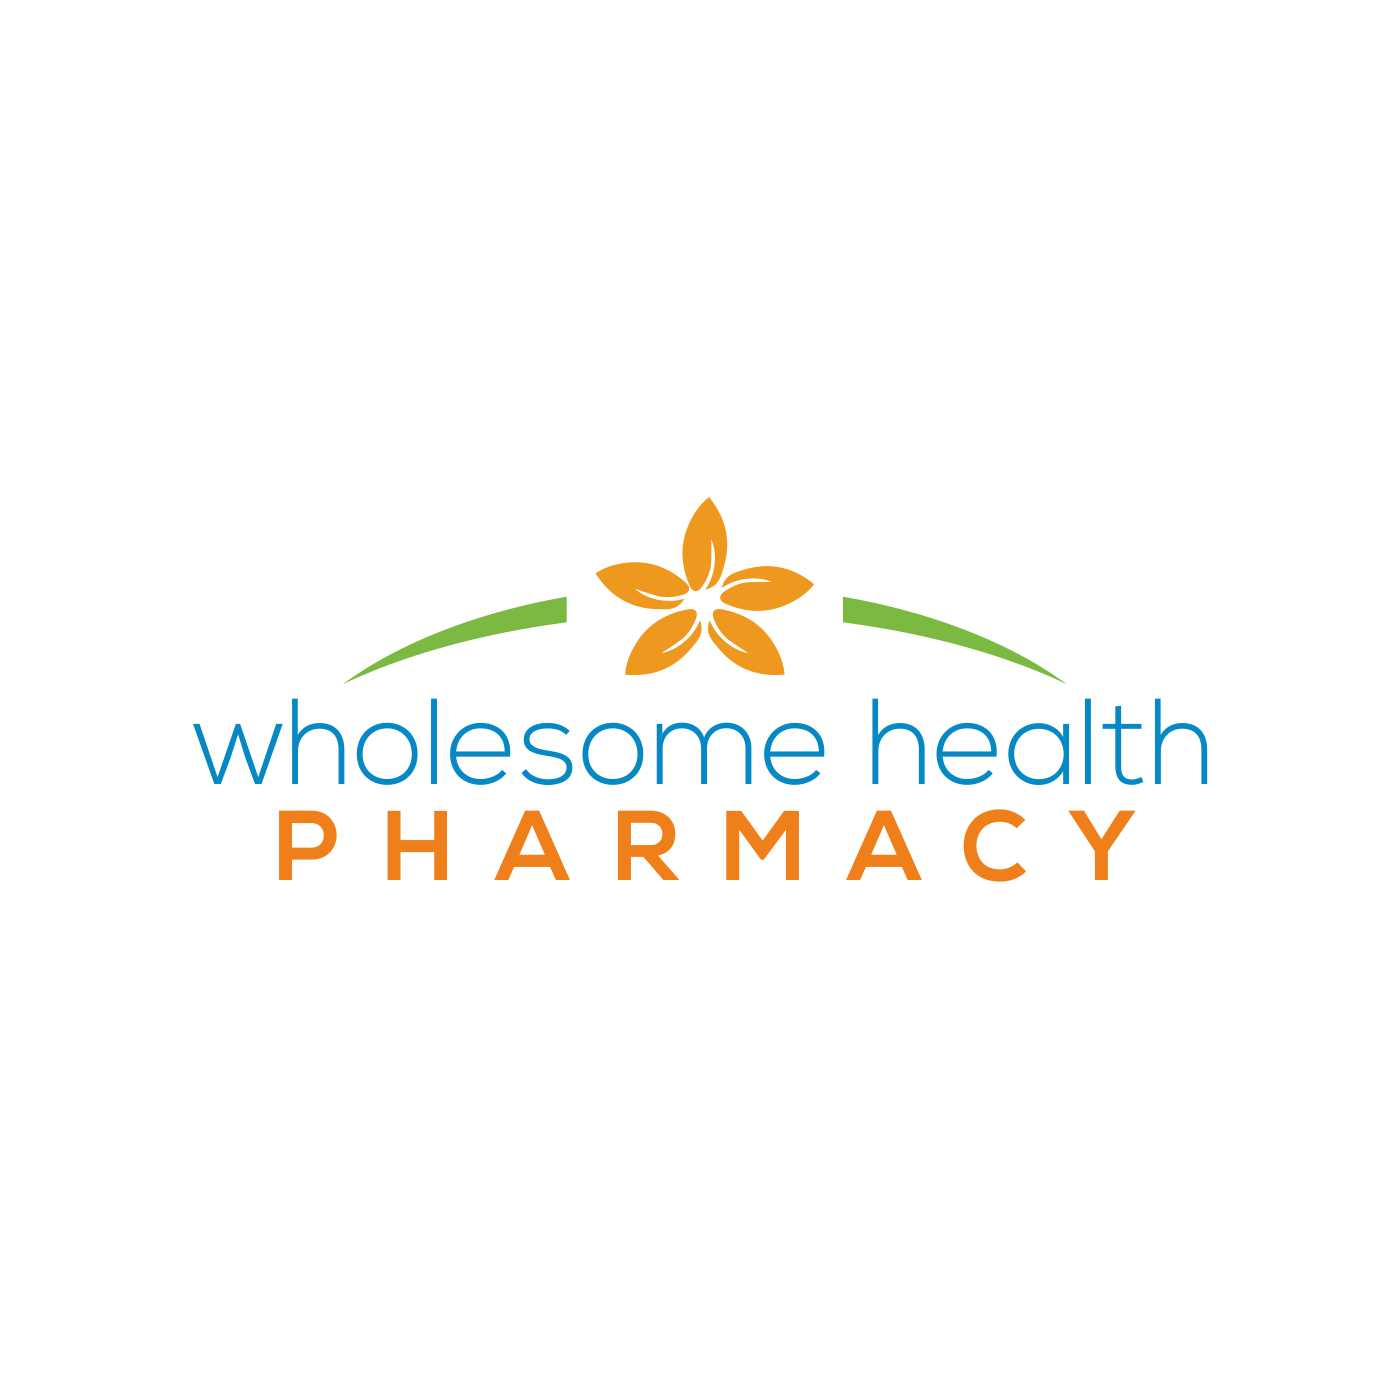 Wholesome Health Pharmacy